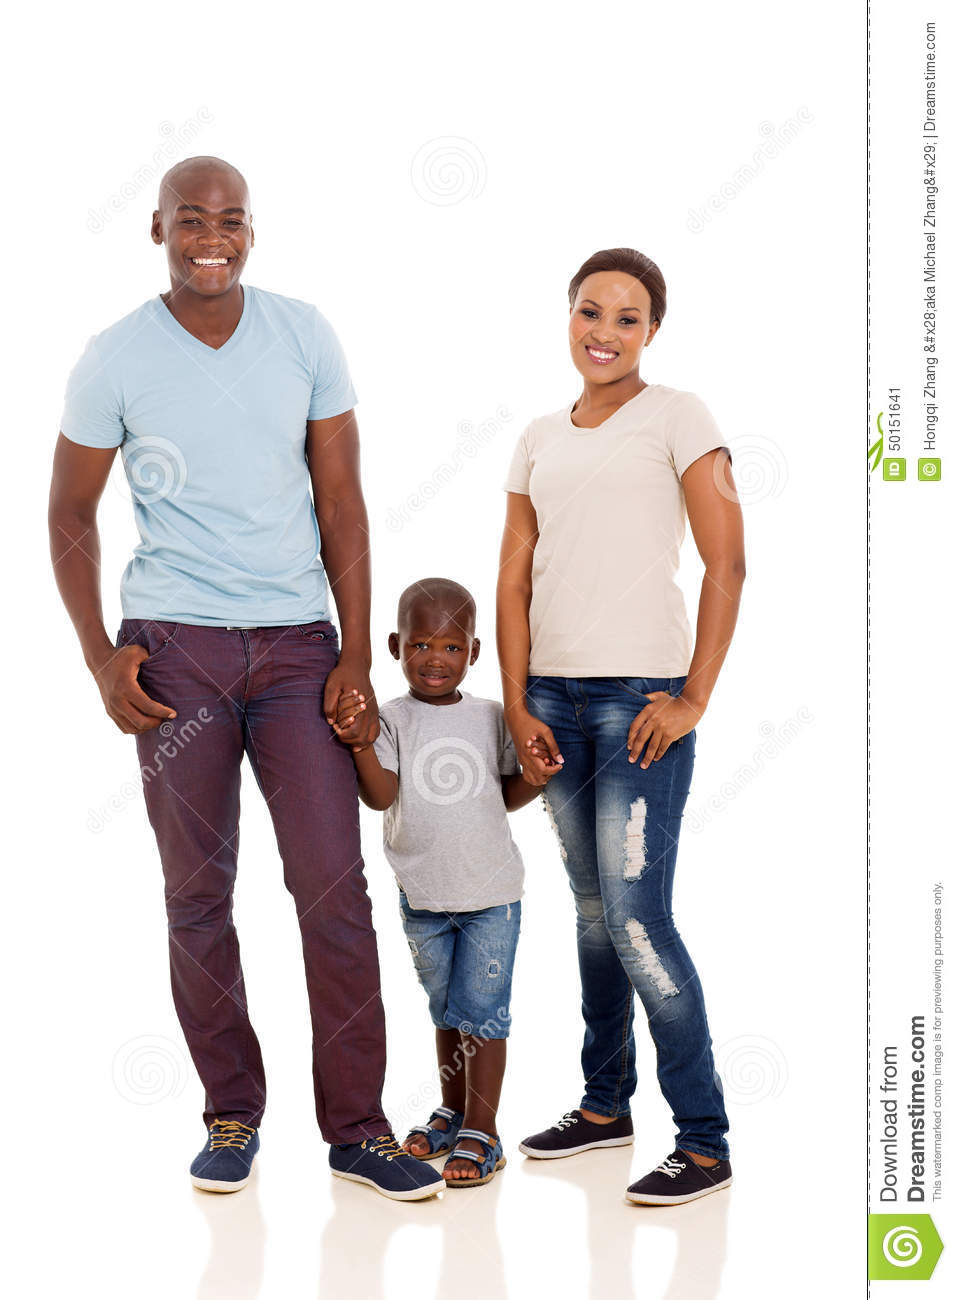 american dreams with the younger family At younger ages, large numbers of african american kids are enrolled in early childhood programs like head start, but by the middle grades, the picture changes.